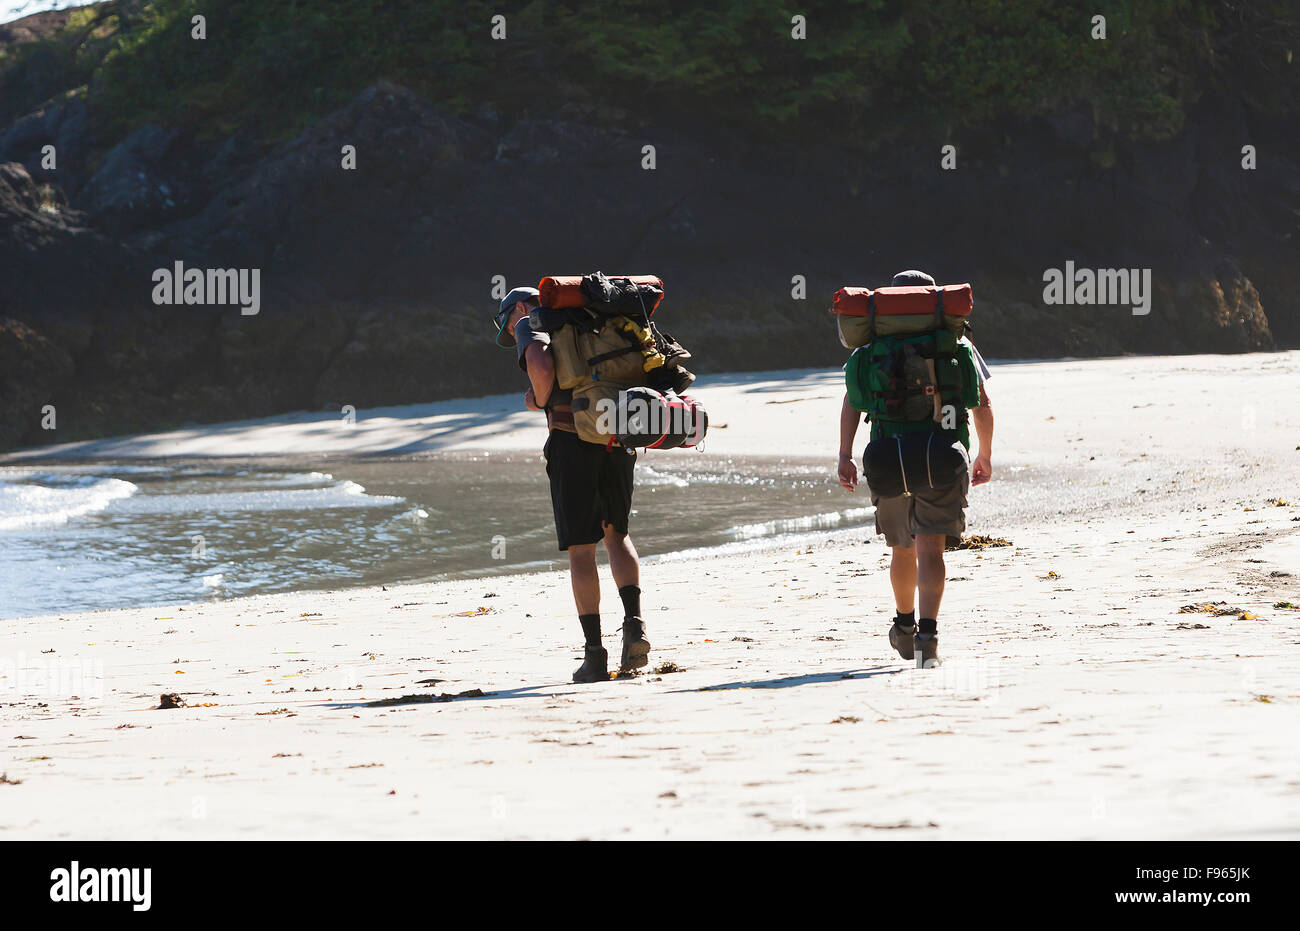 Two hikers stroll along the beach at San Jose Bay, looking for a campsite for the night.  San Jose Bay. - Stock Image